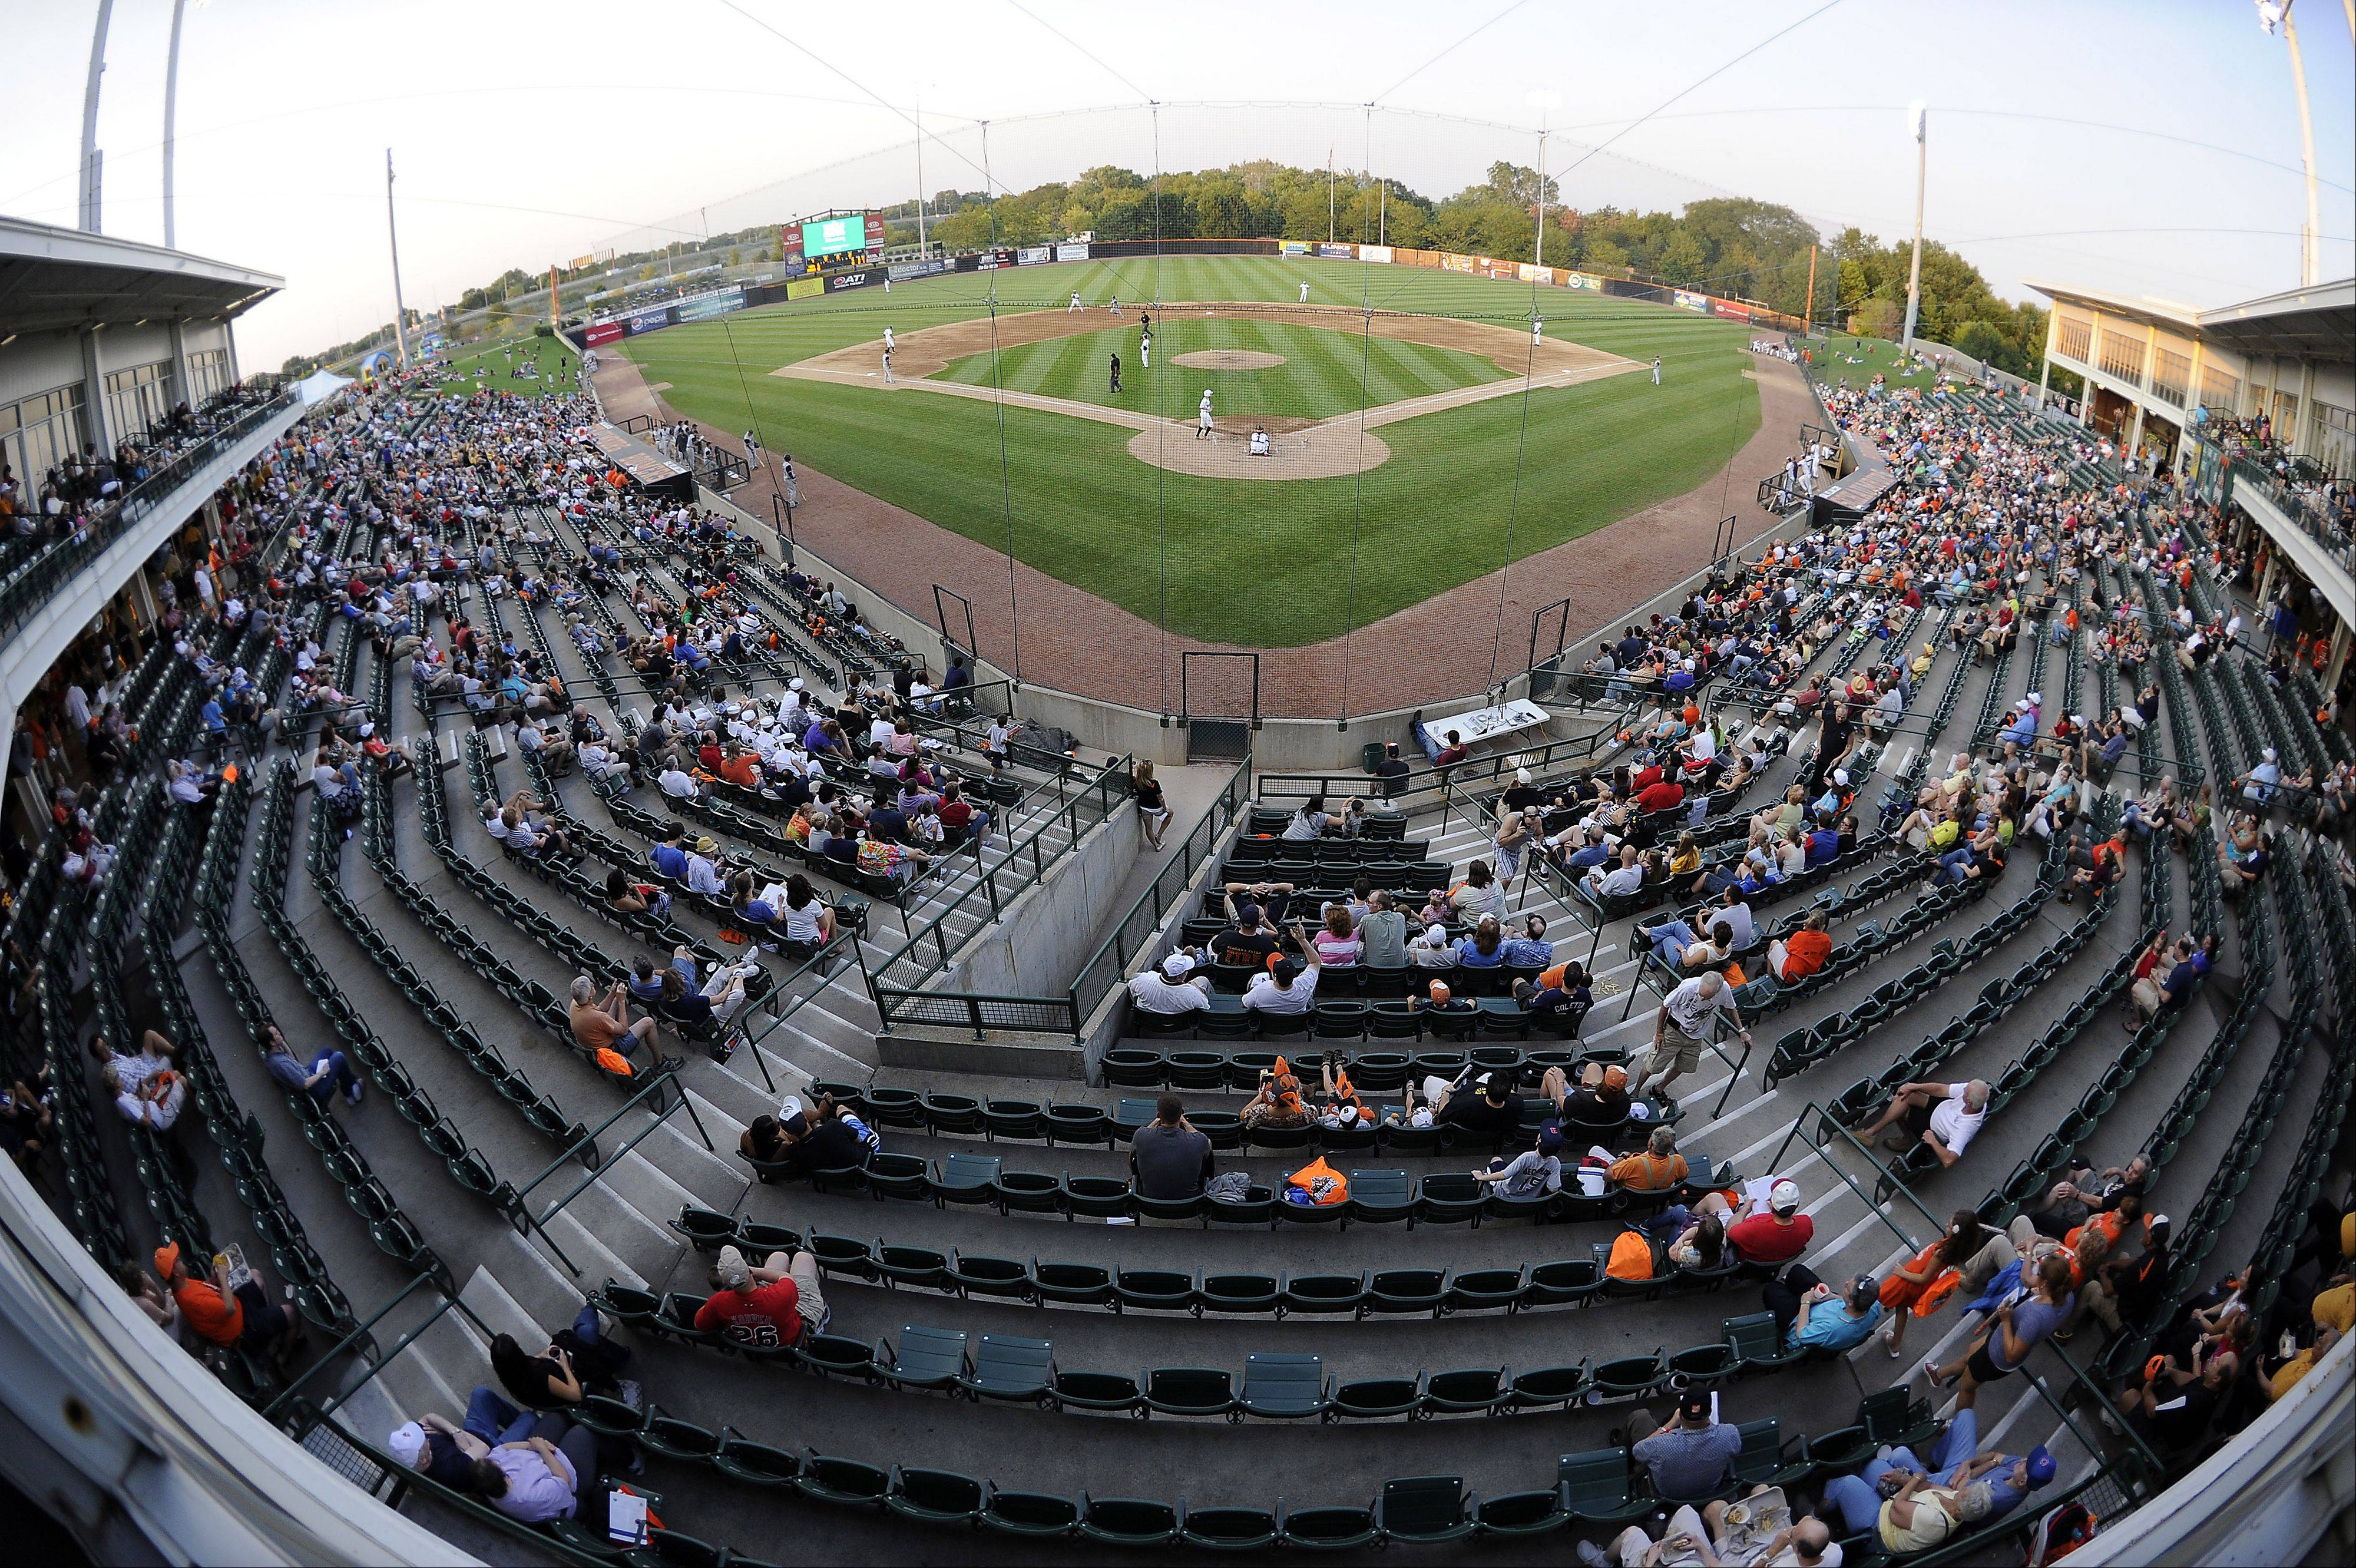 The crowd continues to pour into Schaumburg Boomers Stadium on their last home game of the regular season.